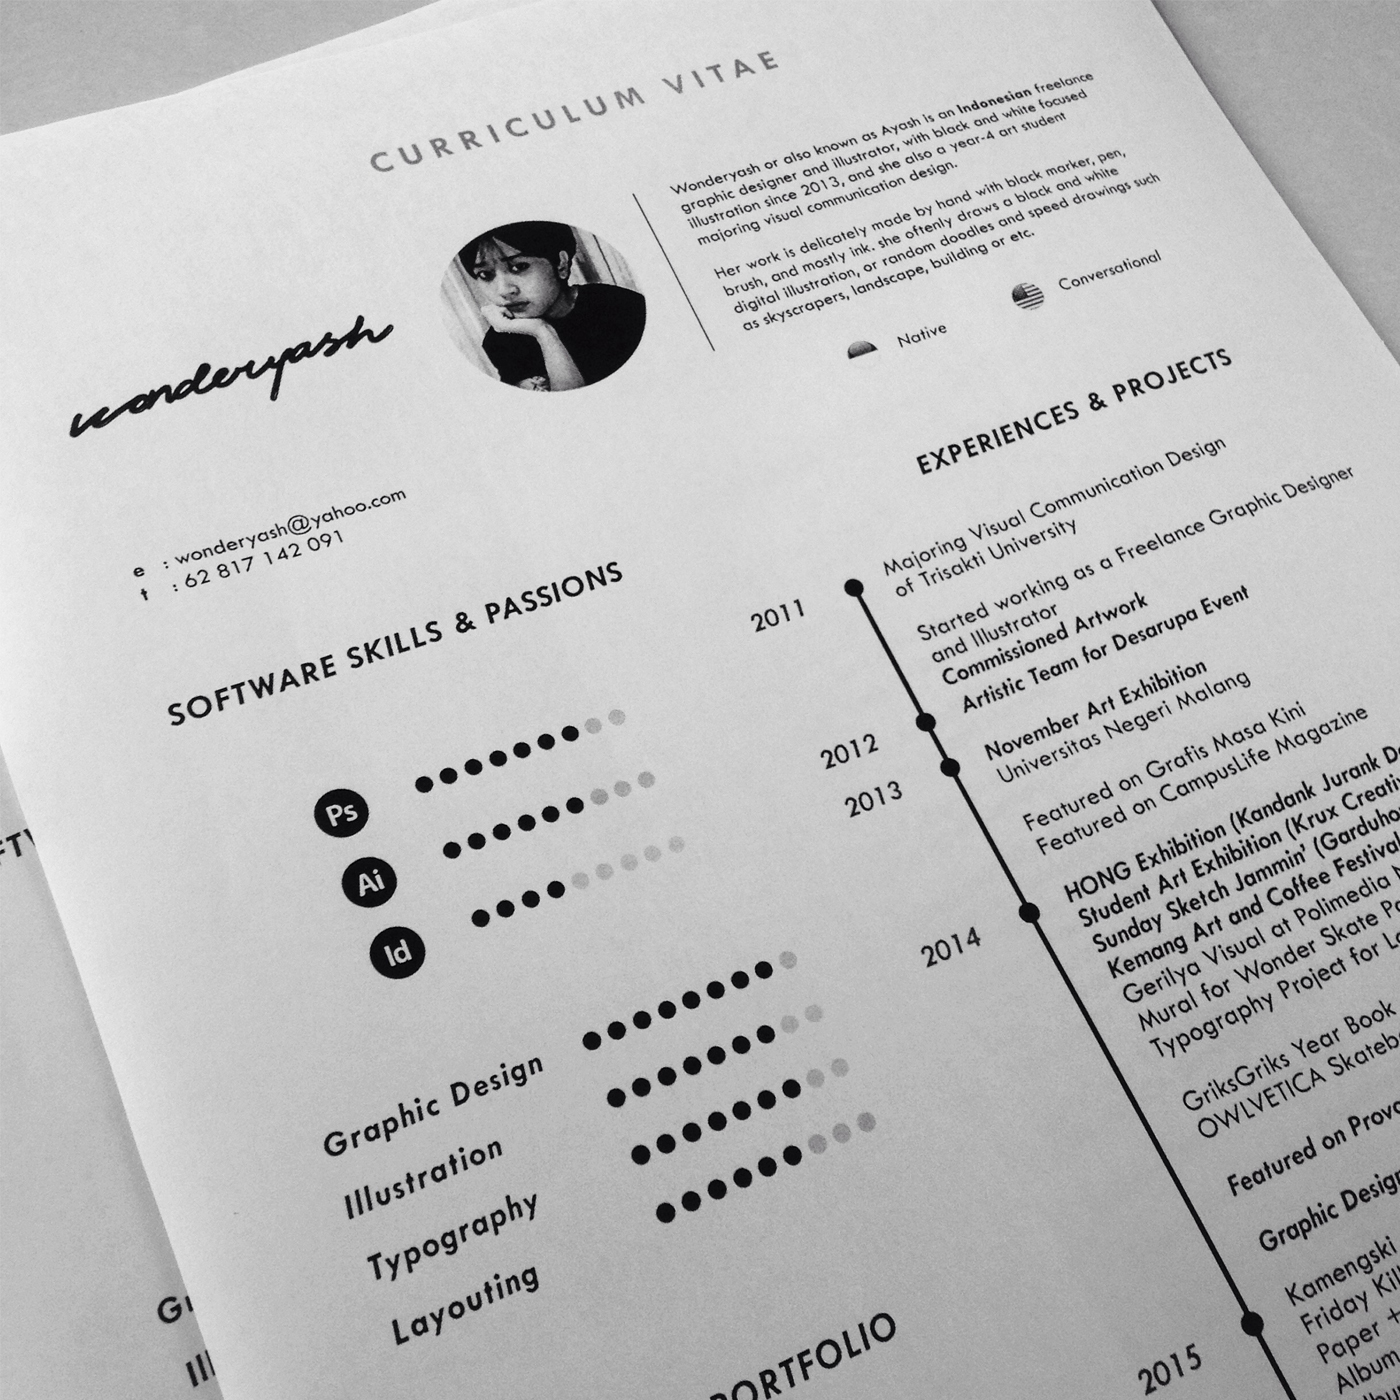 curriculum vitae template  available for download  on behance